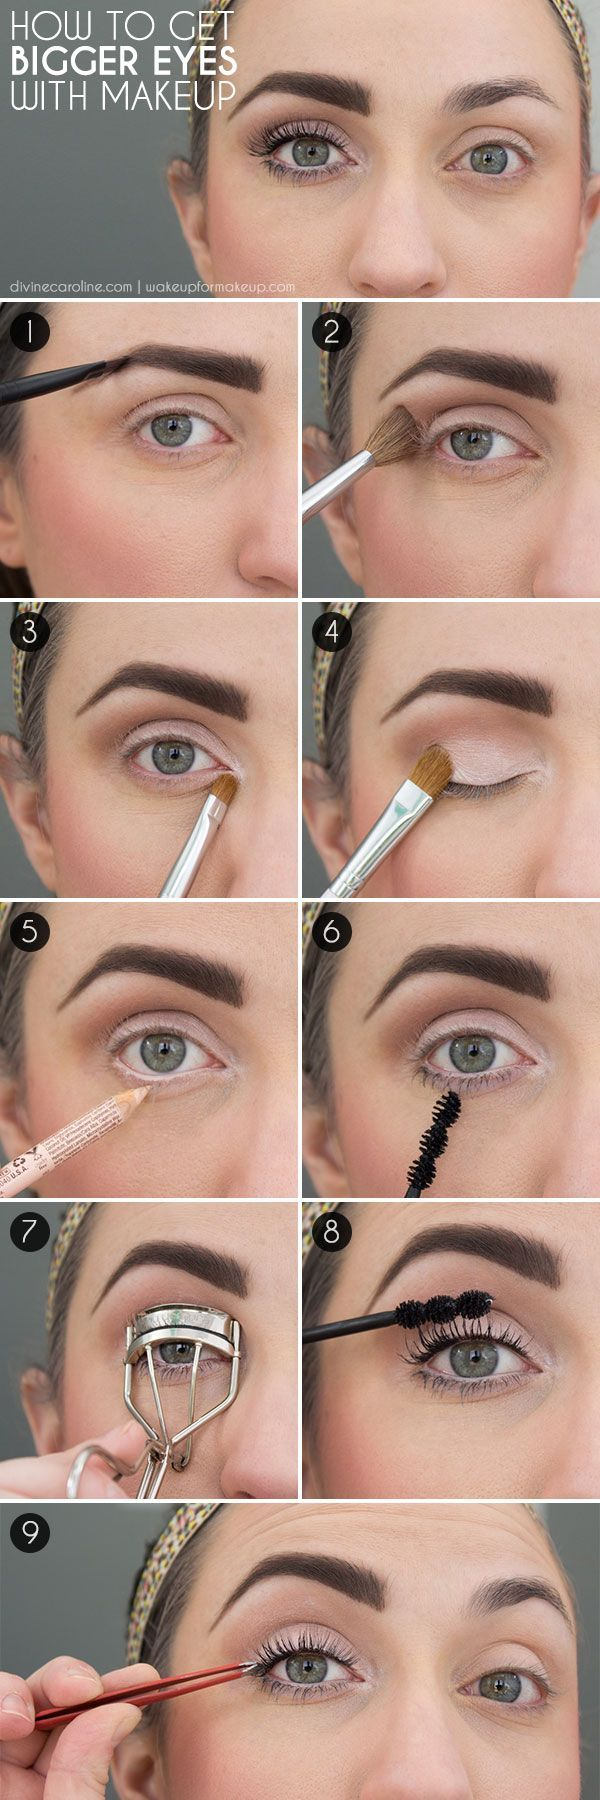 Makeup Tutorial for Bigger Looking Eyes